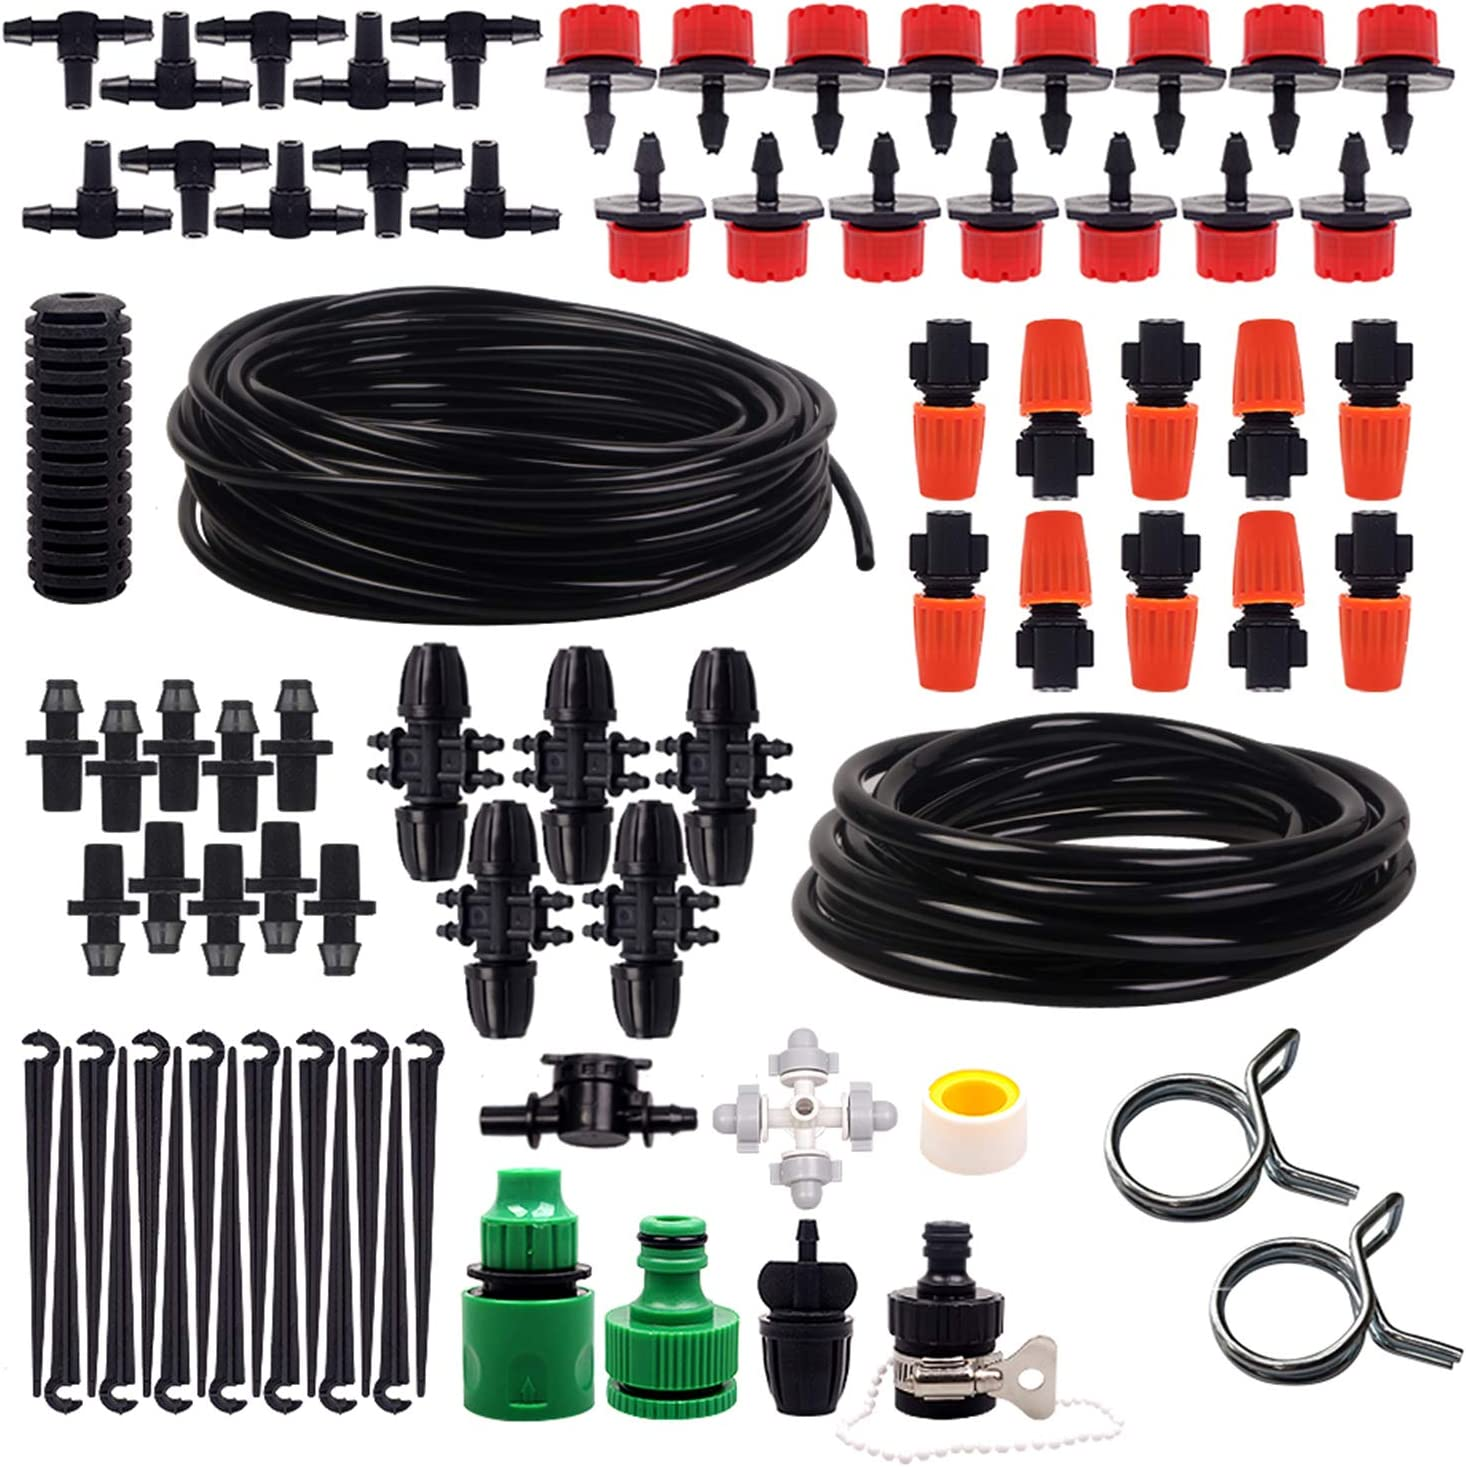 Drip Irrigation Kit, for Greenhouses And Gardens Irrigation System, With Irrigation Clamp And Hanging Nozzle, 16Ft 1/2 And 65ft 1/4tube,Solutions of Leakage And Irrigation System Water Pressure